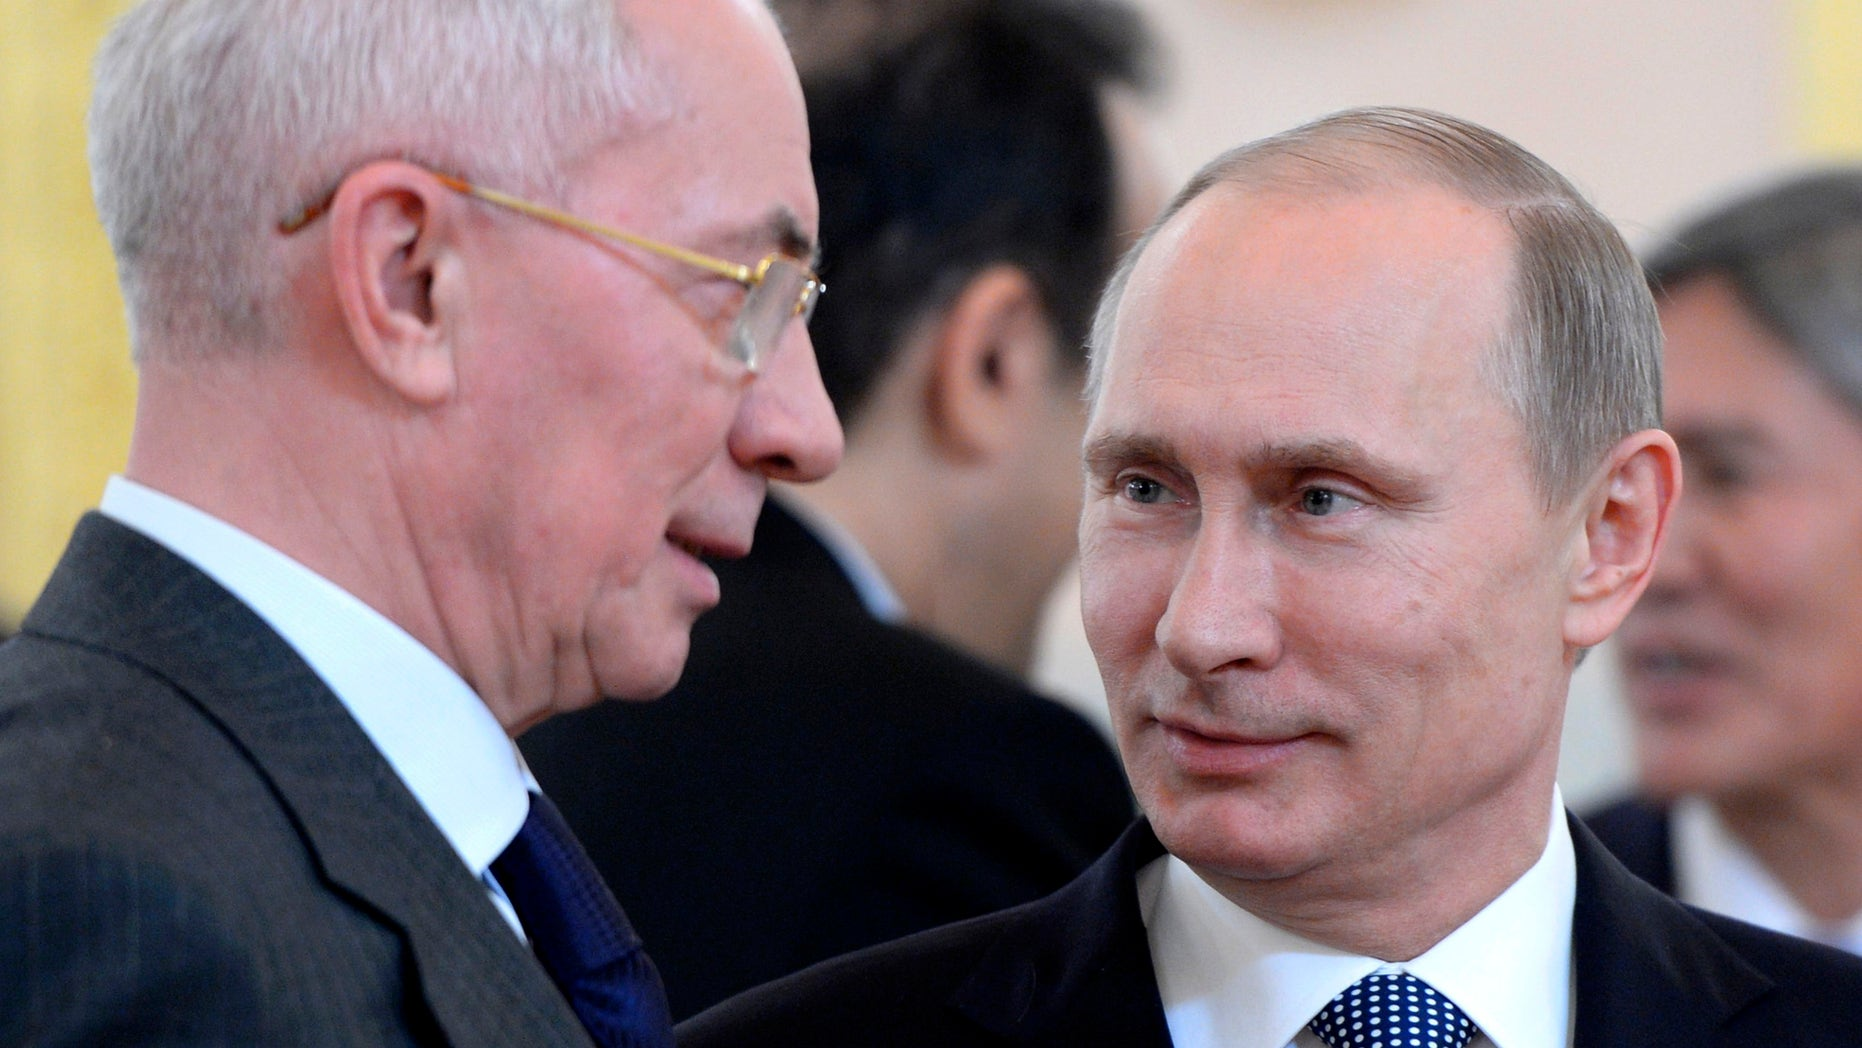 Russian President Vladimir Putin, right, and Ukrainian Prime Minister Mykola Azarov speak before a meeting of the Eurasian Economic Community in the Kremlin in Moscow, Tuesday, Dec. 24, 2013. (AP Photo/RIA-Novosti, Alexei Nikolsky, Presidential Press Service)